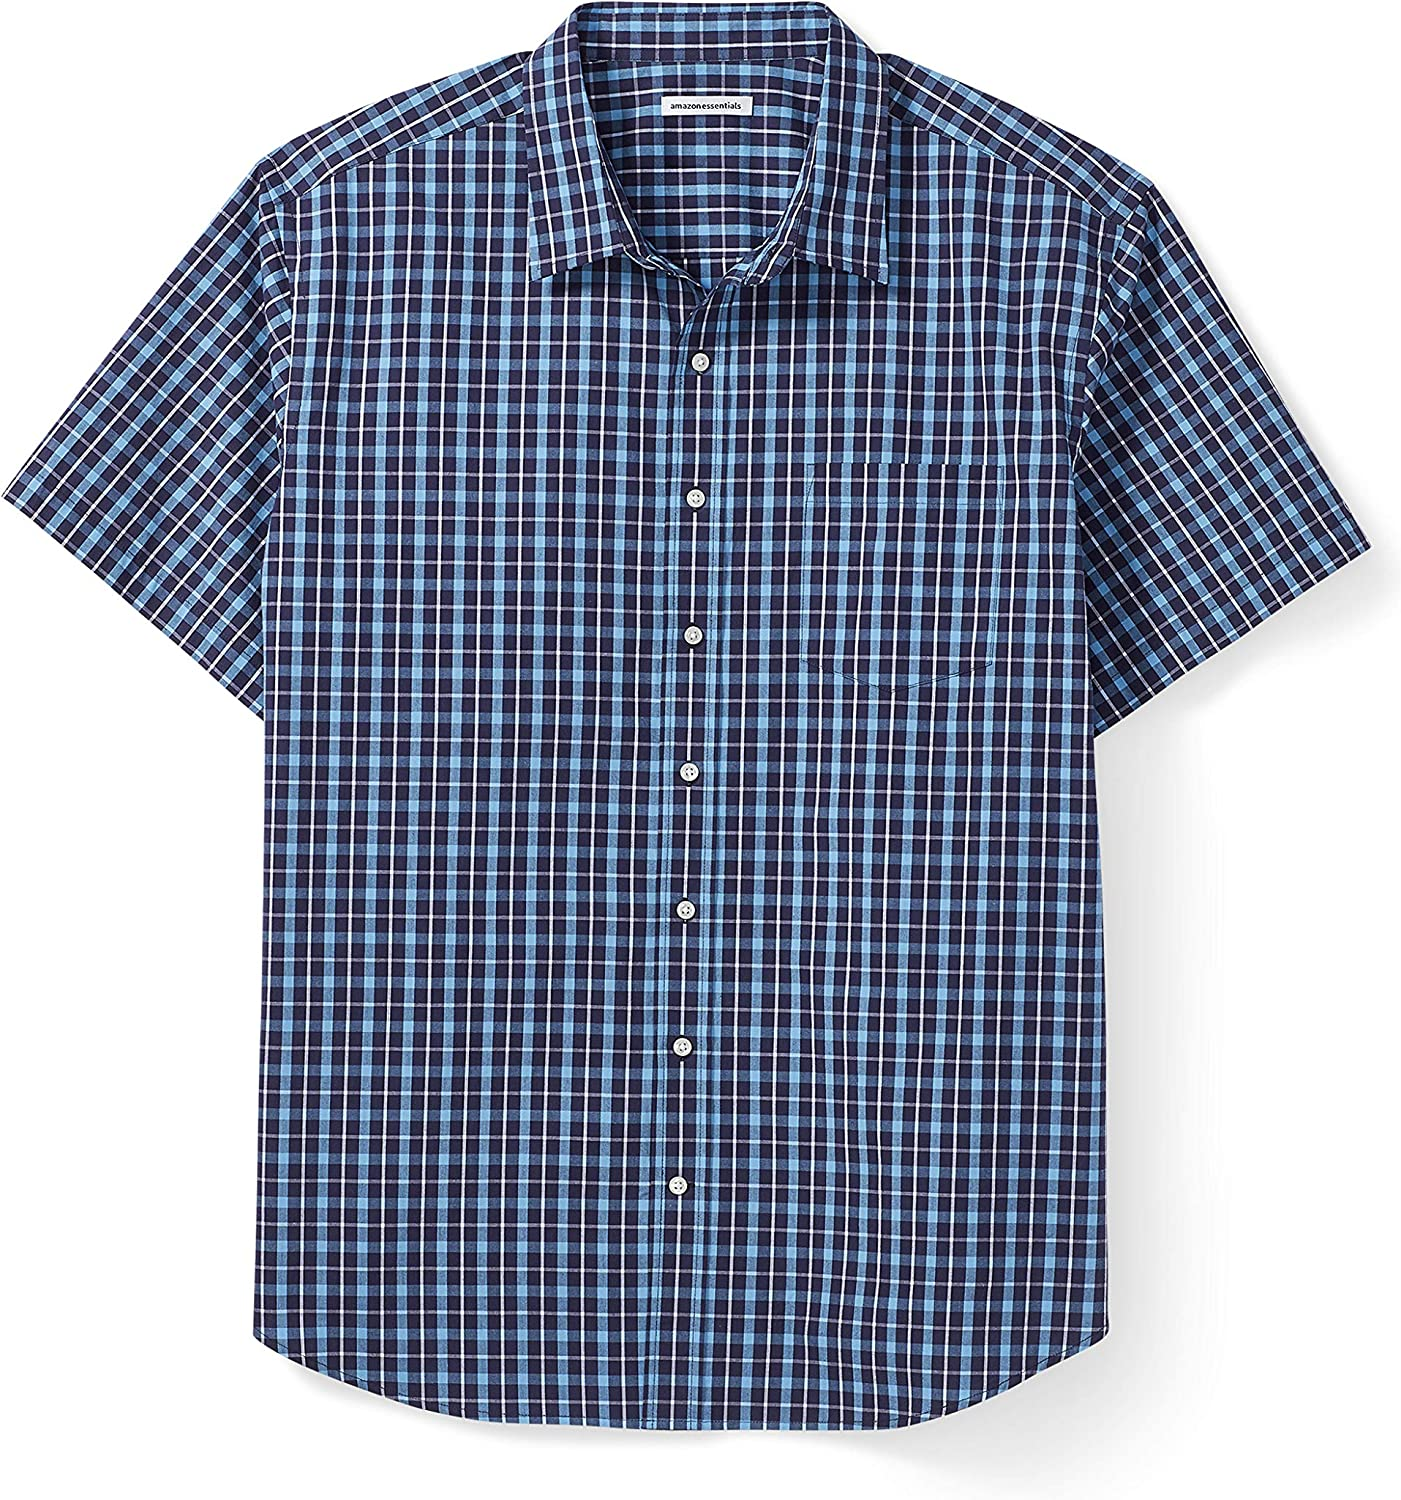 Essentials Men's Big & Tall Short-Sleeve Plaid Shirt fit by DXL: Clothing